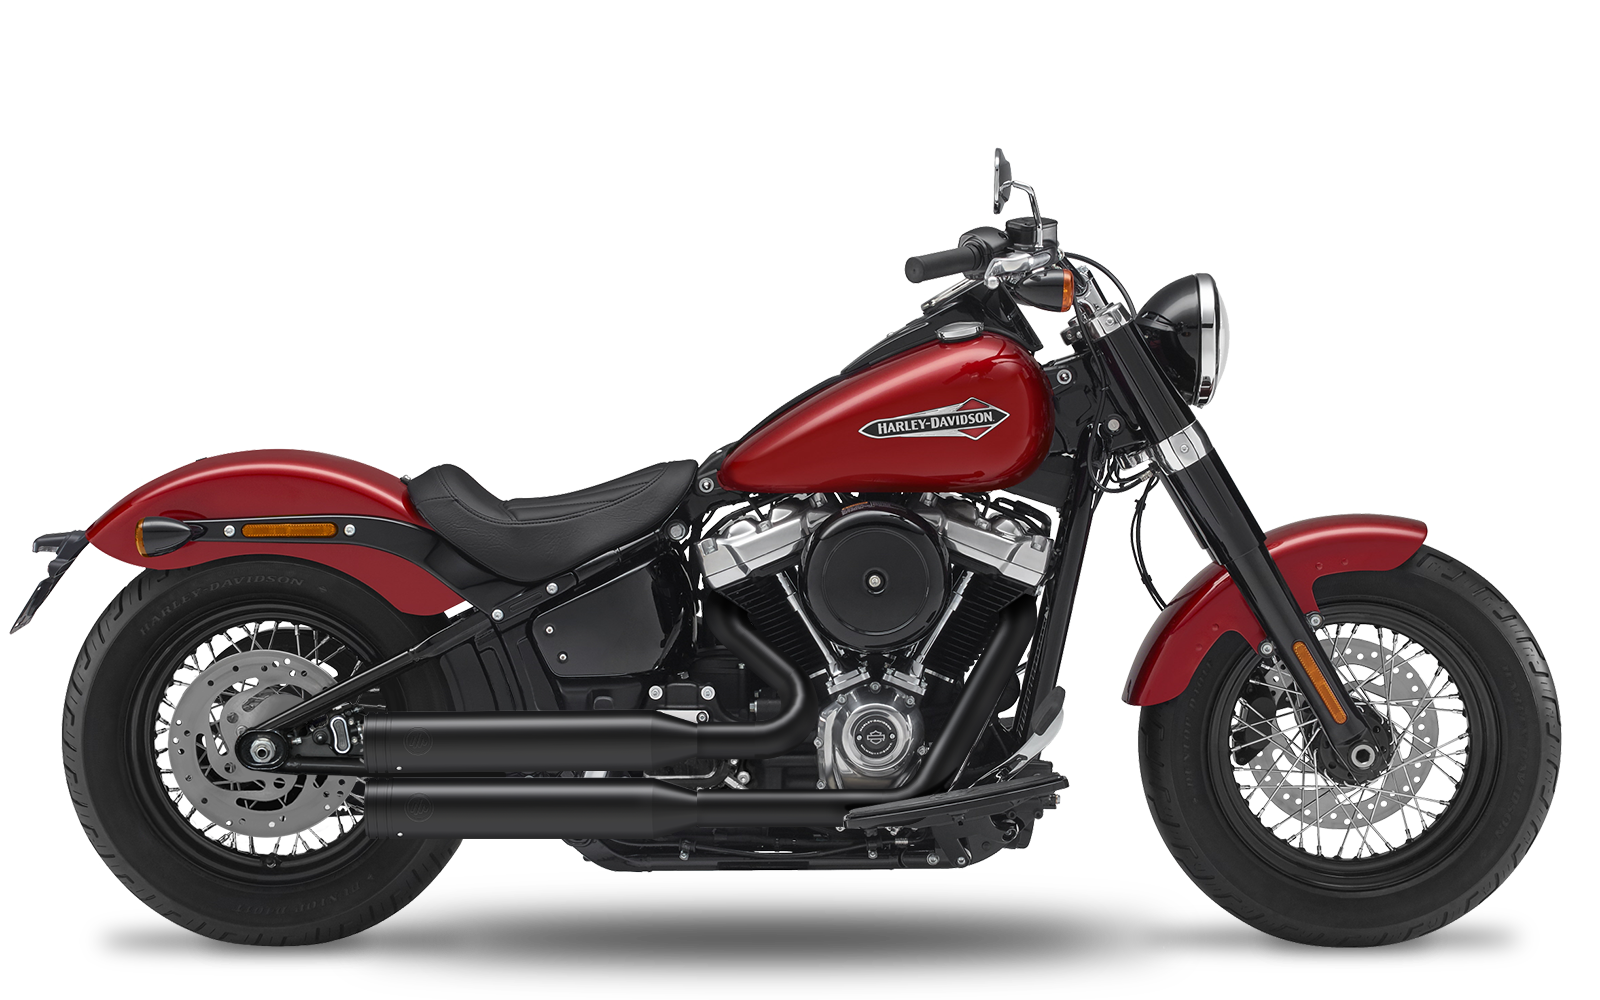 Softail - Slim - ME107 - 2021 - Complete systems adjustable